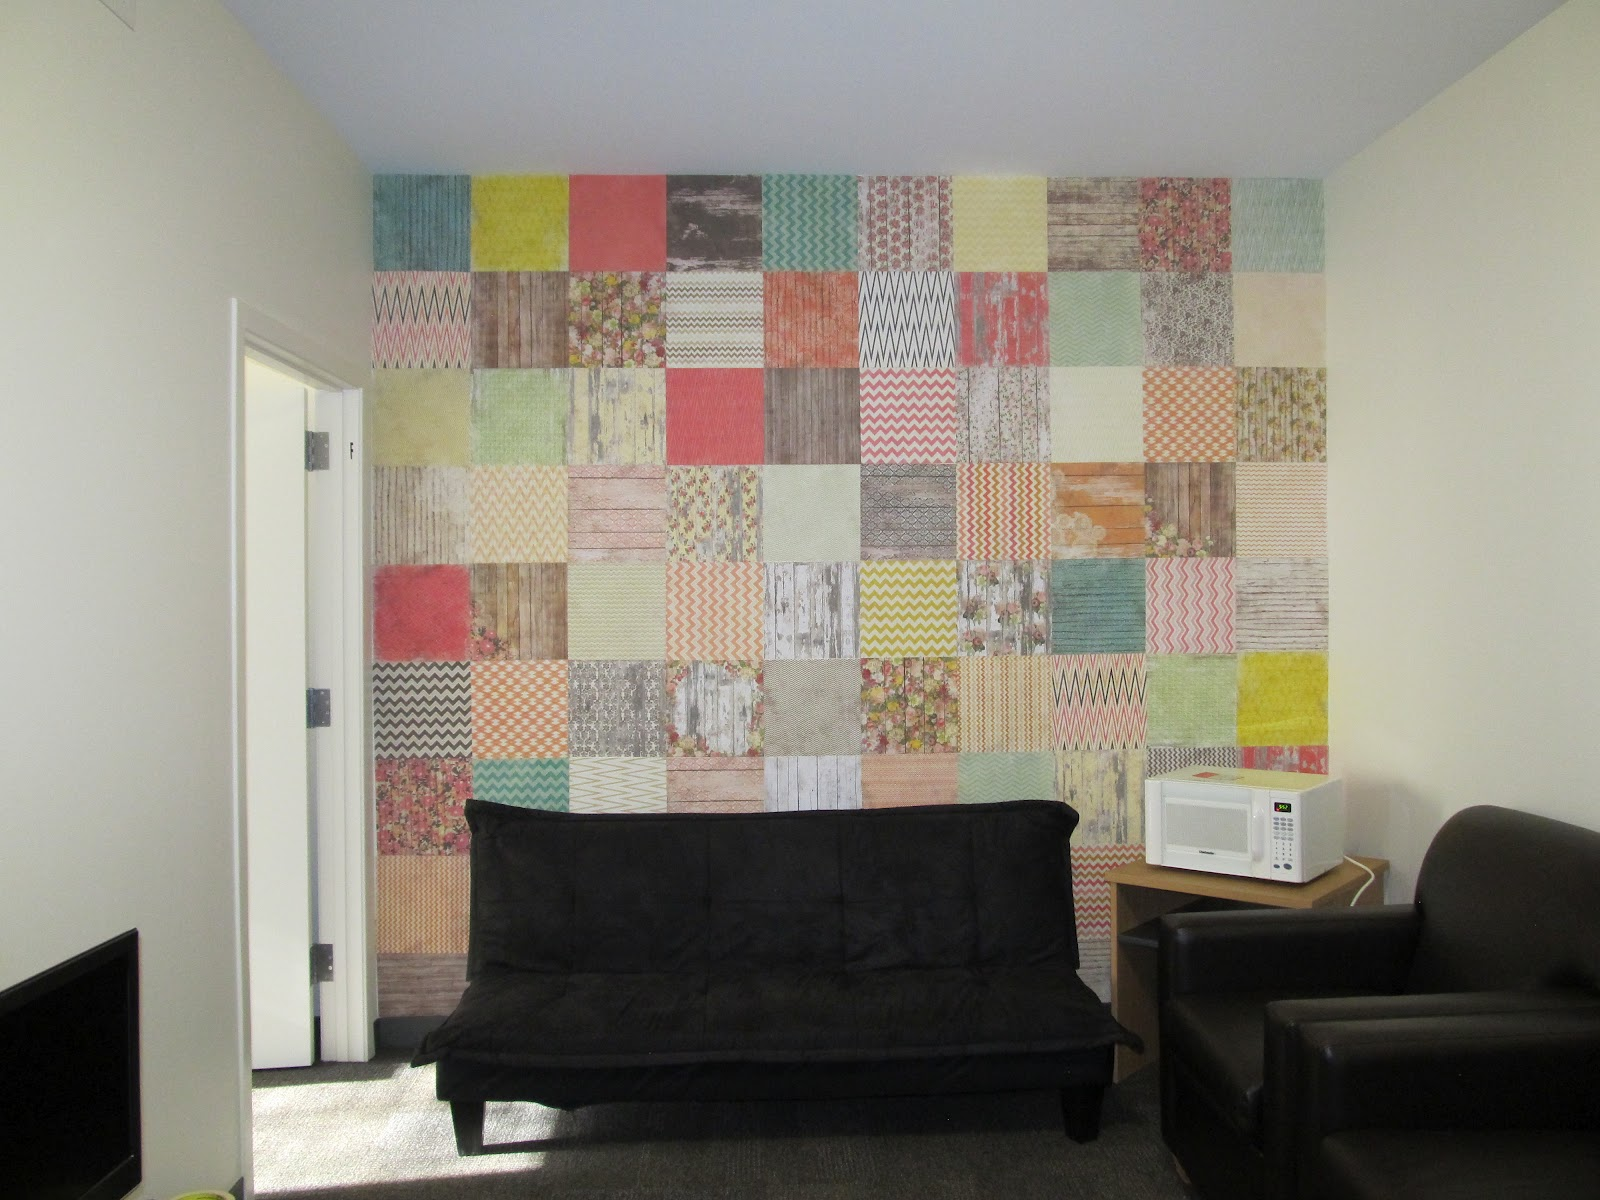 Scrapbook Paper Wall | I Wanna Major in Crafts